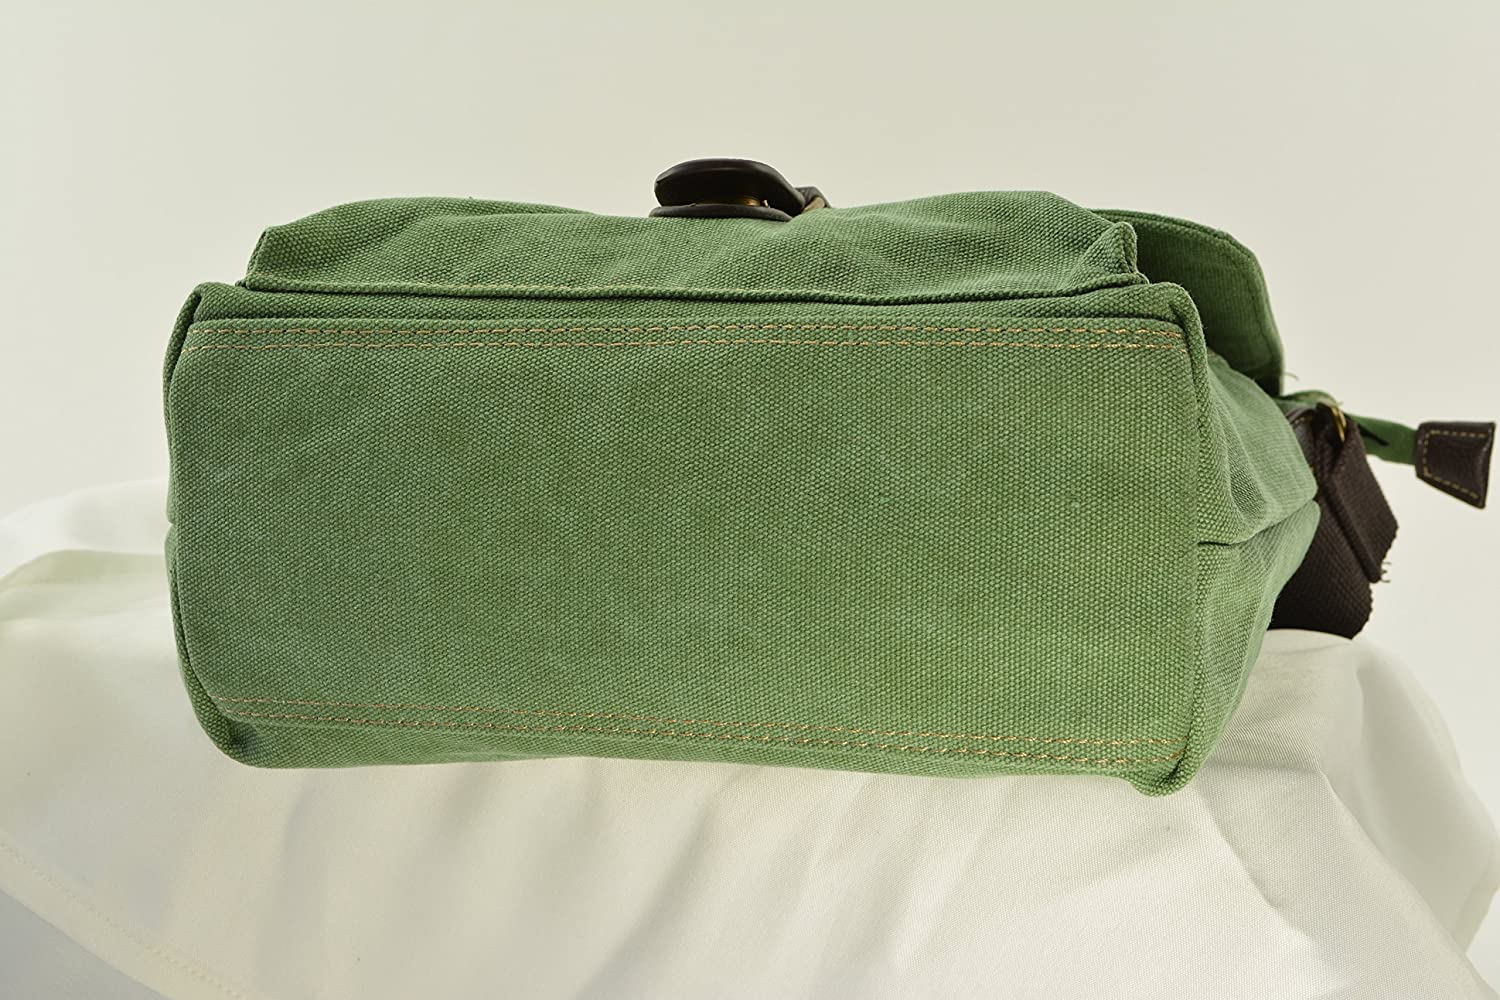 Large Semi Auto or Revolver Green Canvas Messenger Concealed Carry Bag Room for a Tablet or Laptop and More..an excellent choice for Men or Women!